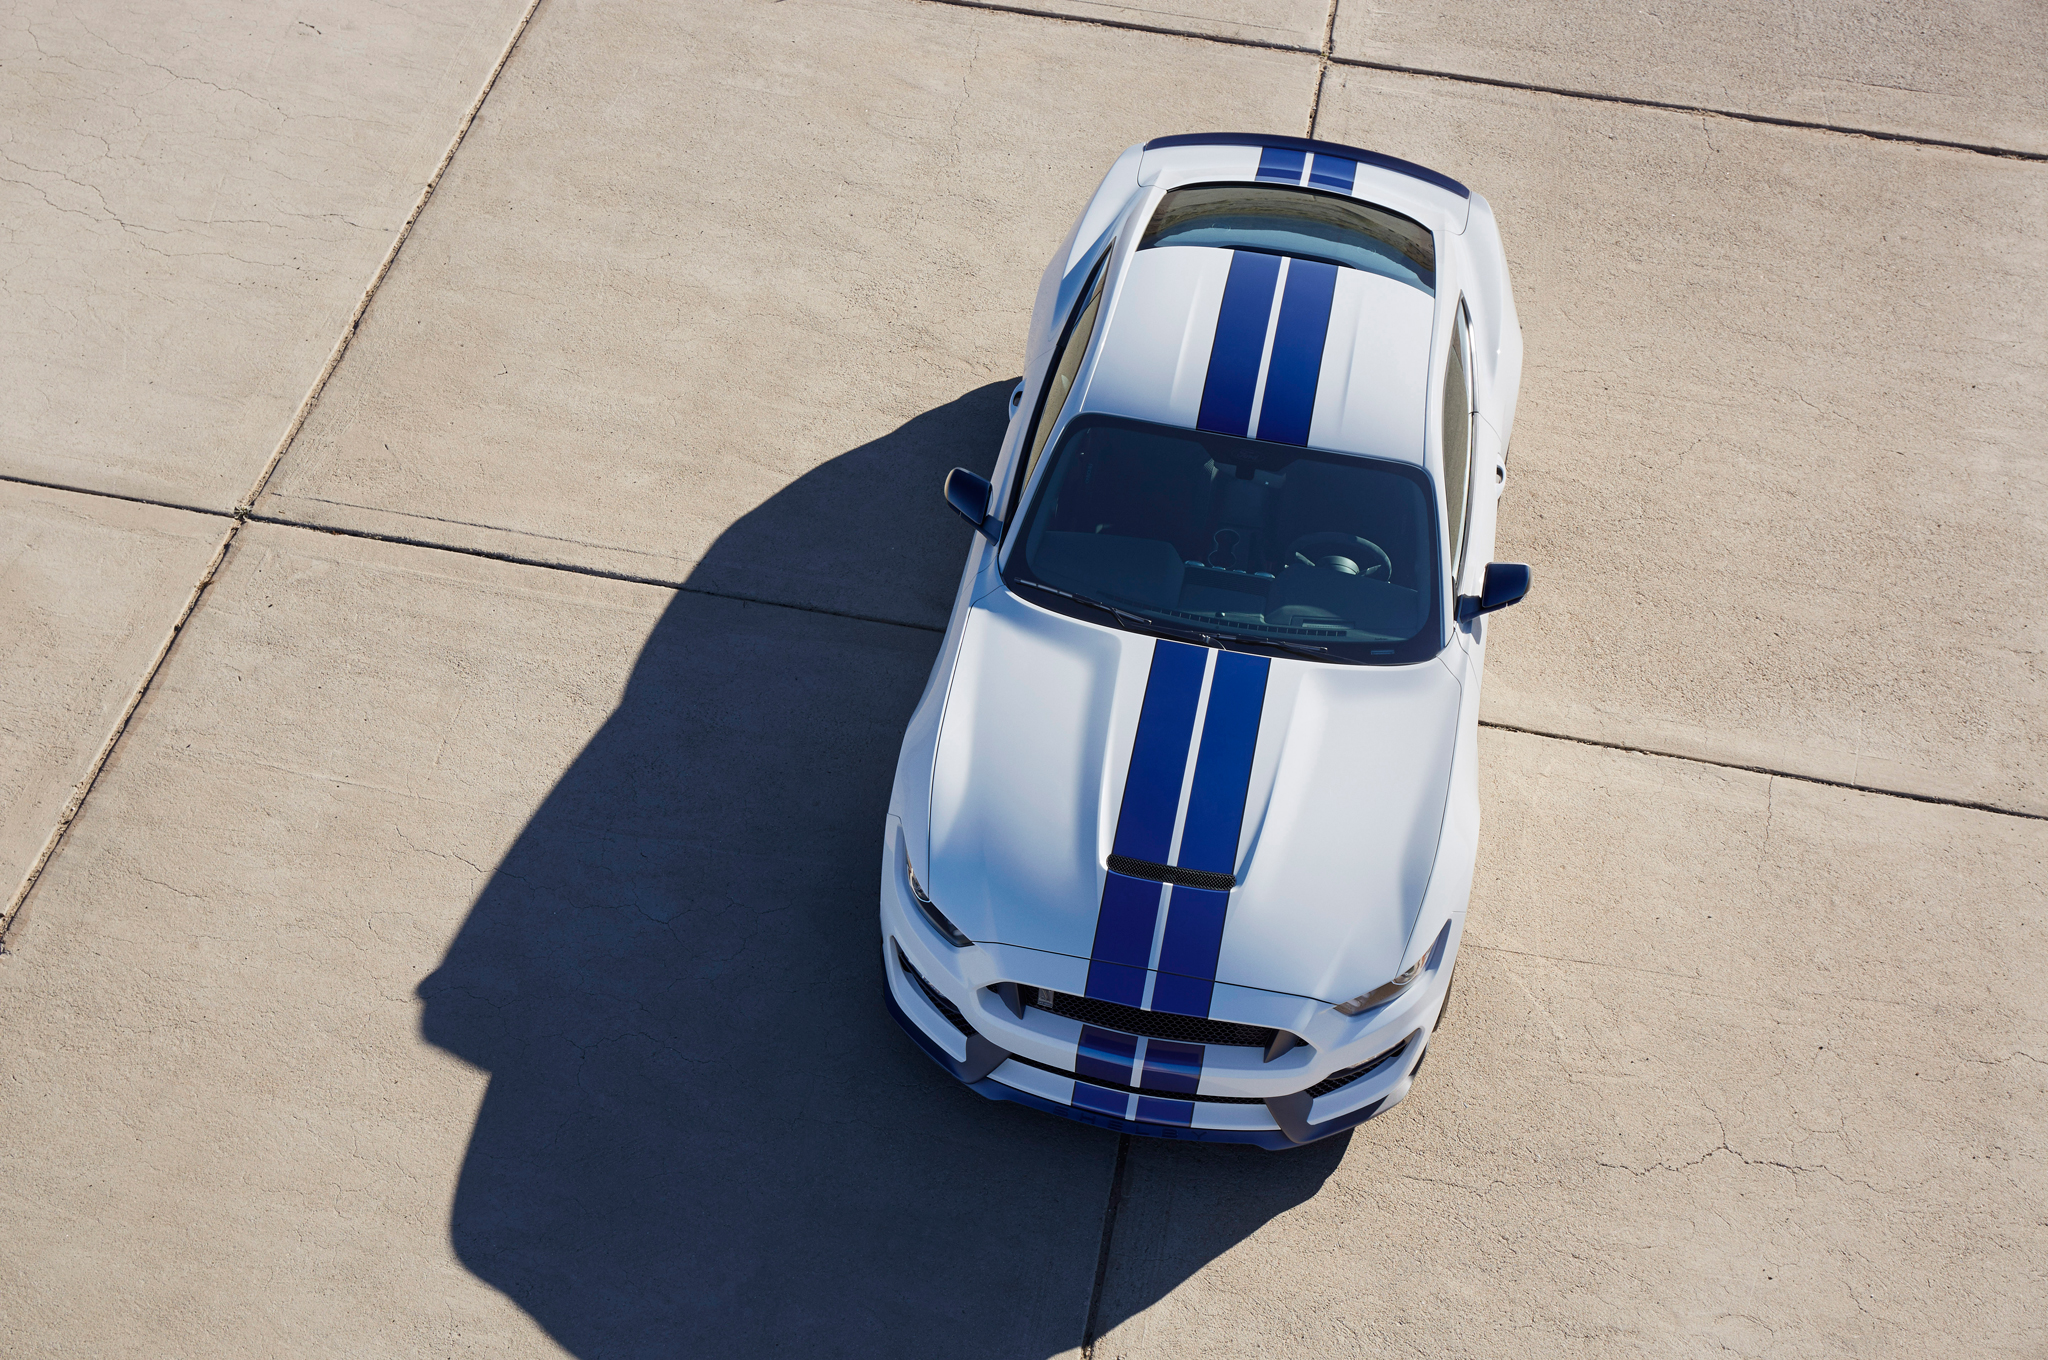 2016 Ford Shelby Gt350 Mustang Top View (Photo 46 of 47)